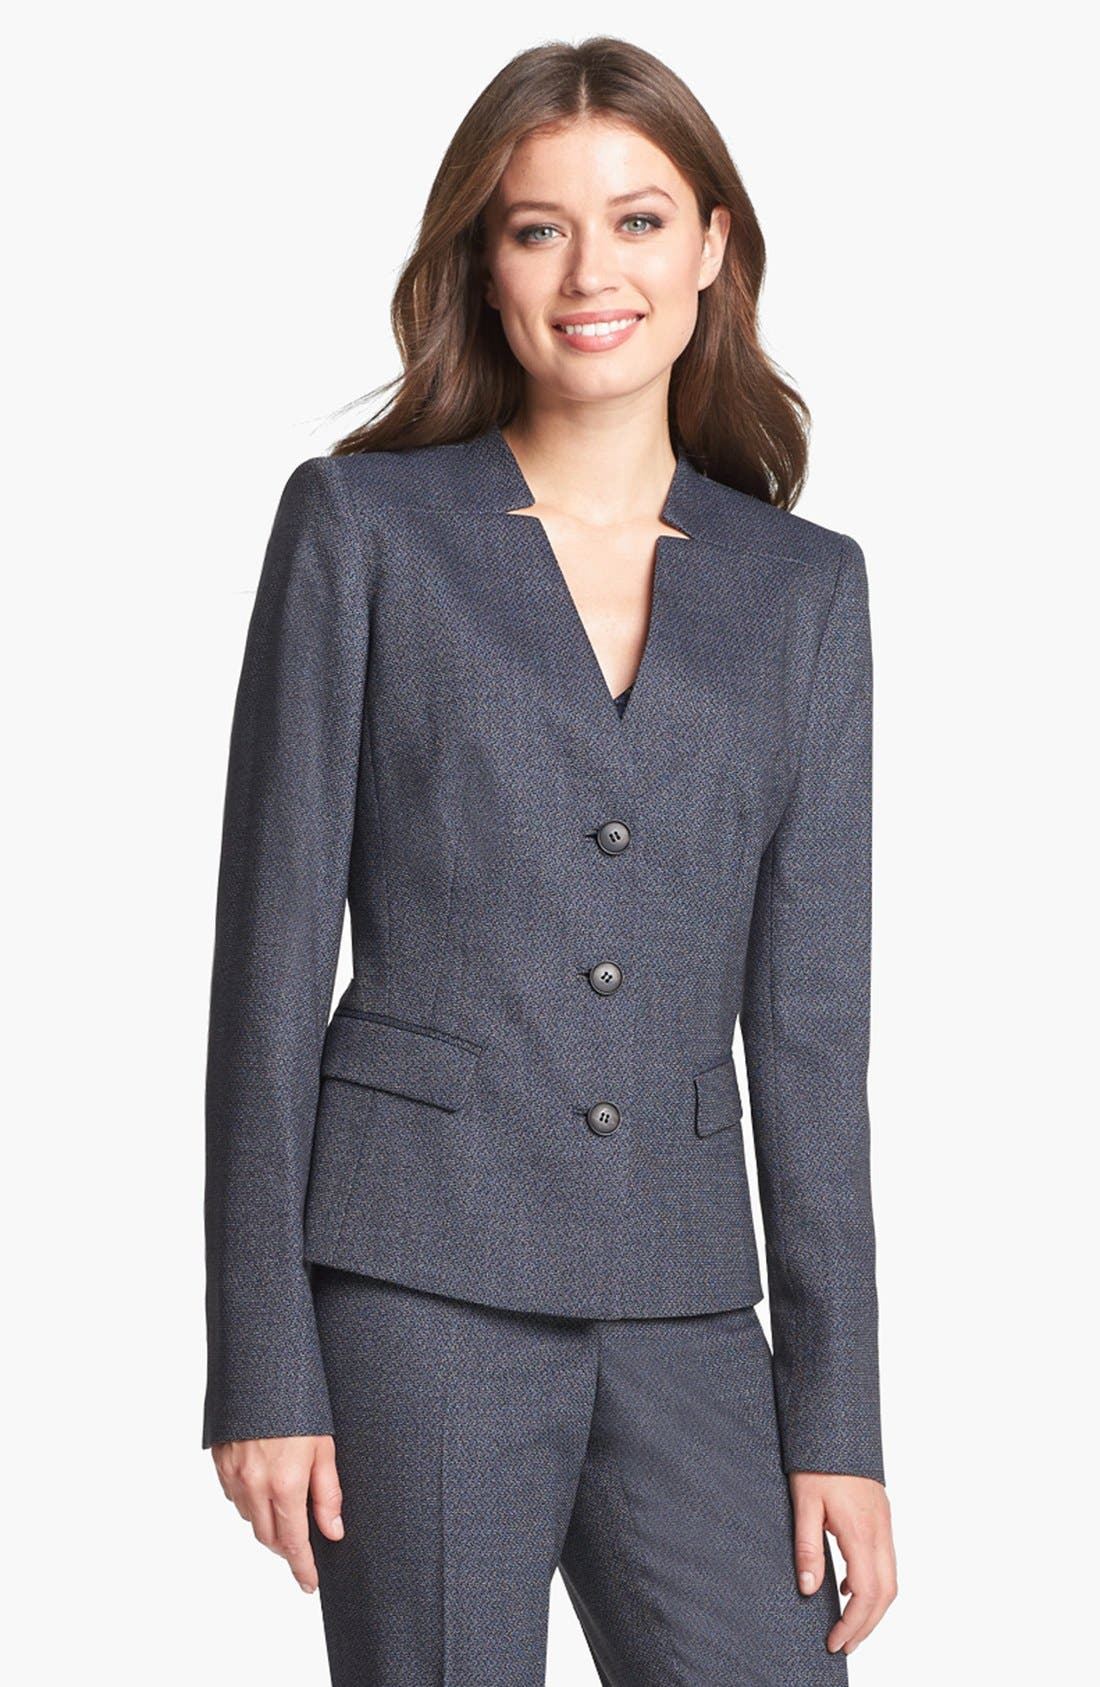 Alternate Image 1 Selected - Lafayette 148 New York 'Kerri' Jacket (Petite)